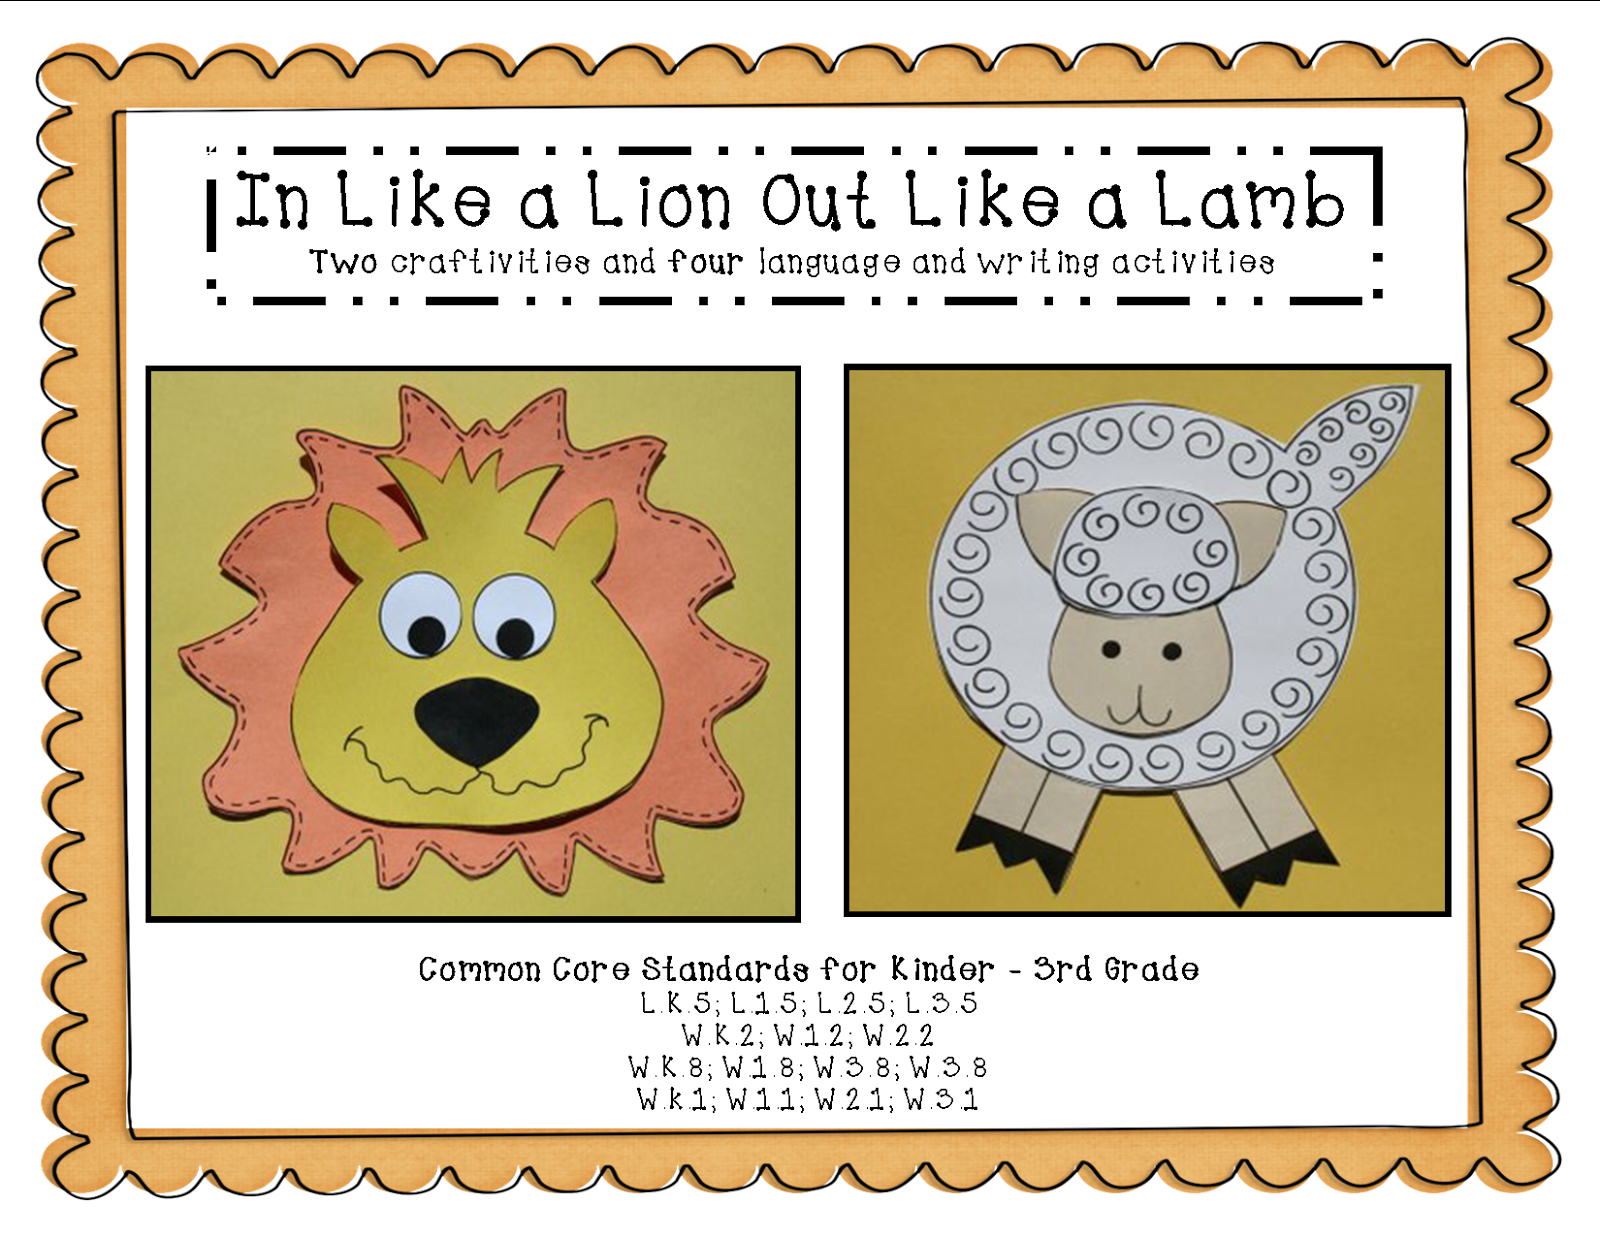 http://www.teacherspayteachers.com/Product/In-Like-a-Lion-Out-Like-a-Lamb-Craftivity-and-Four-Language-Arts-Activities-1109523